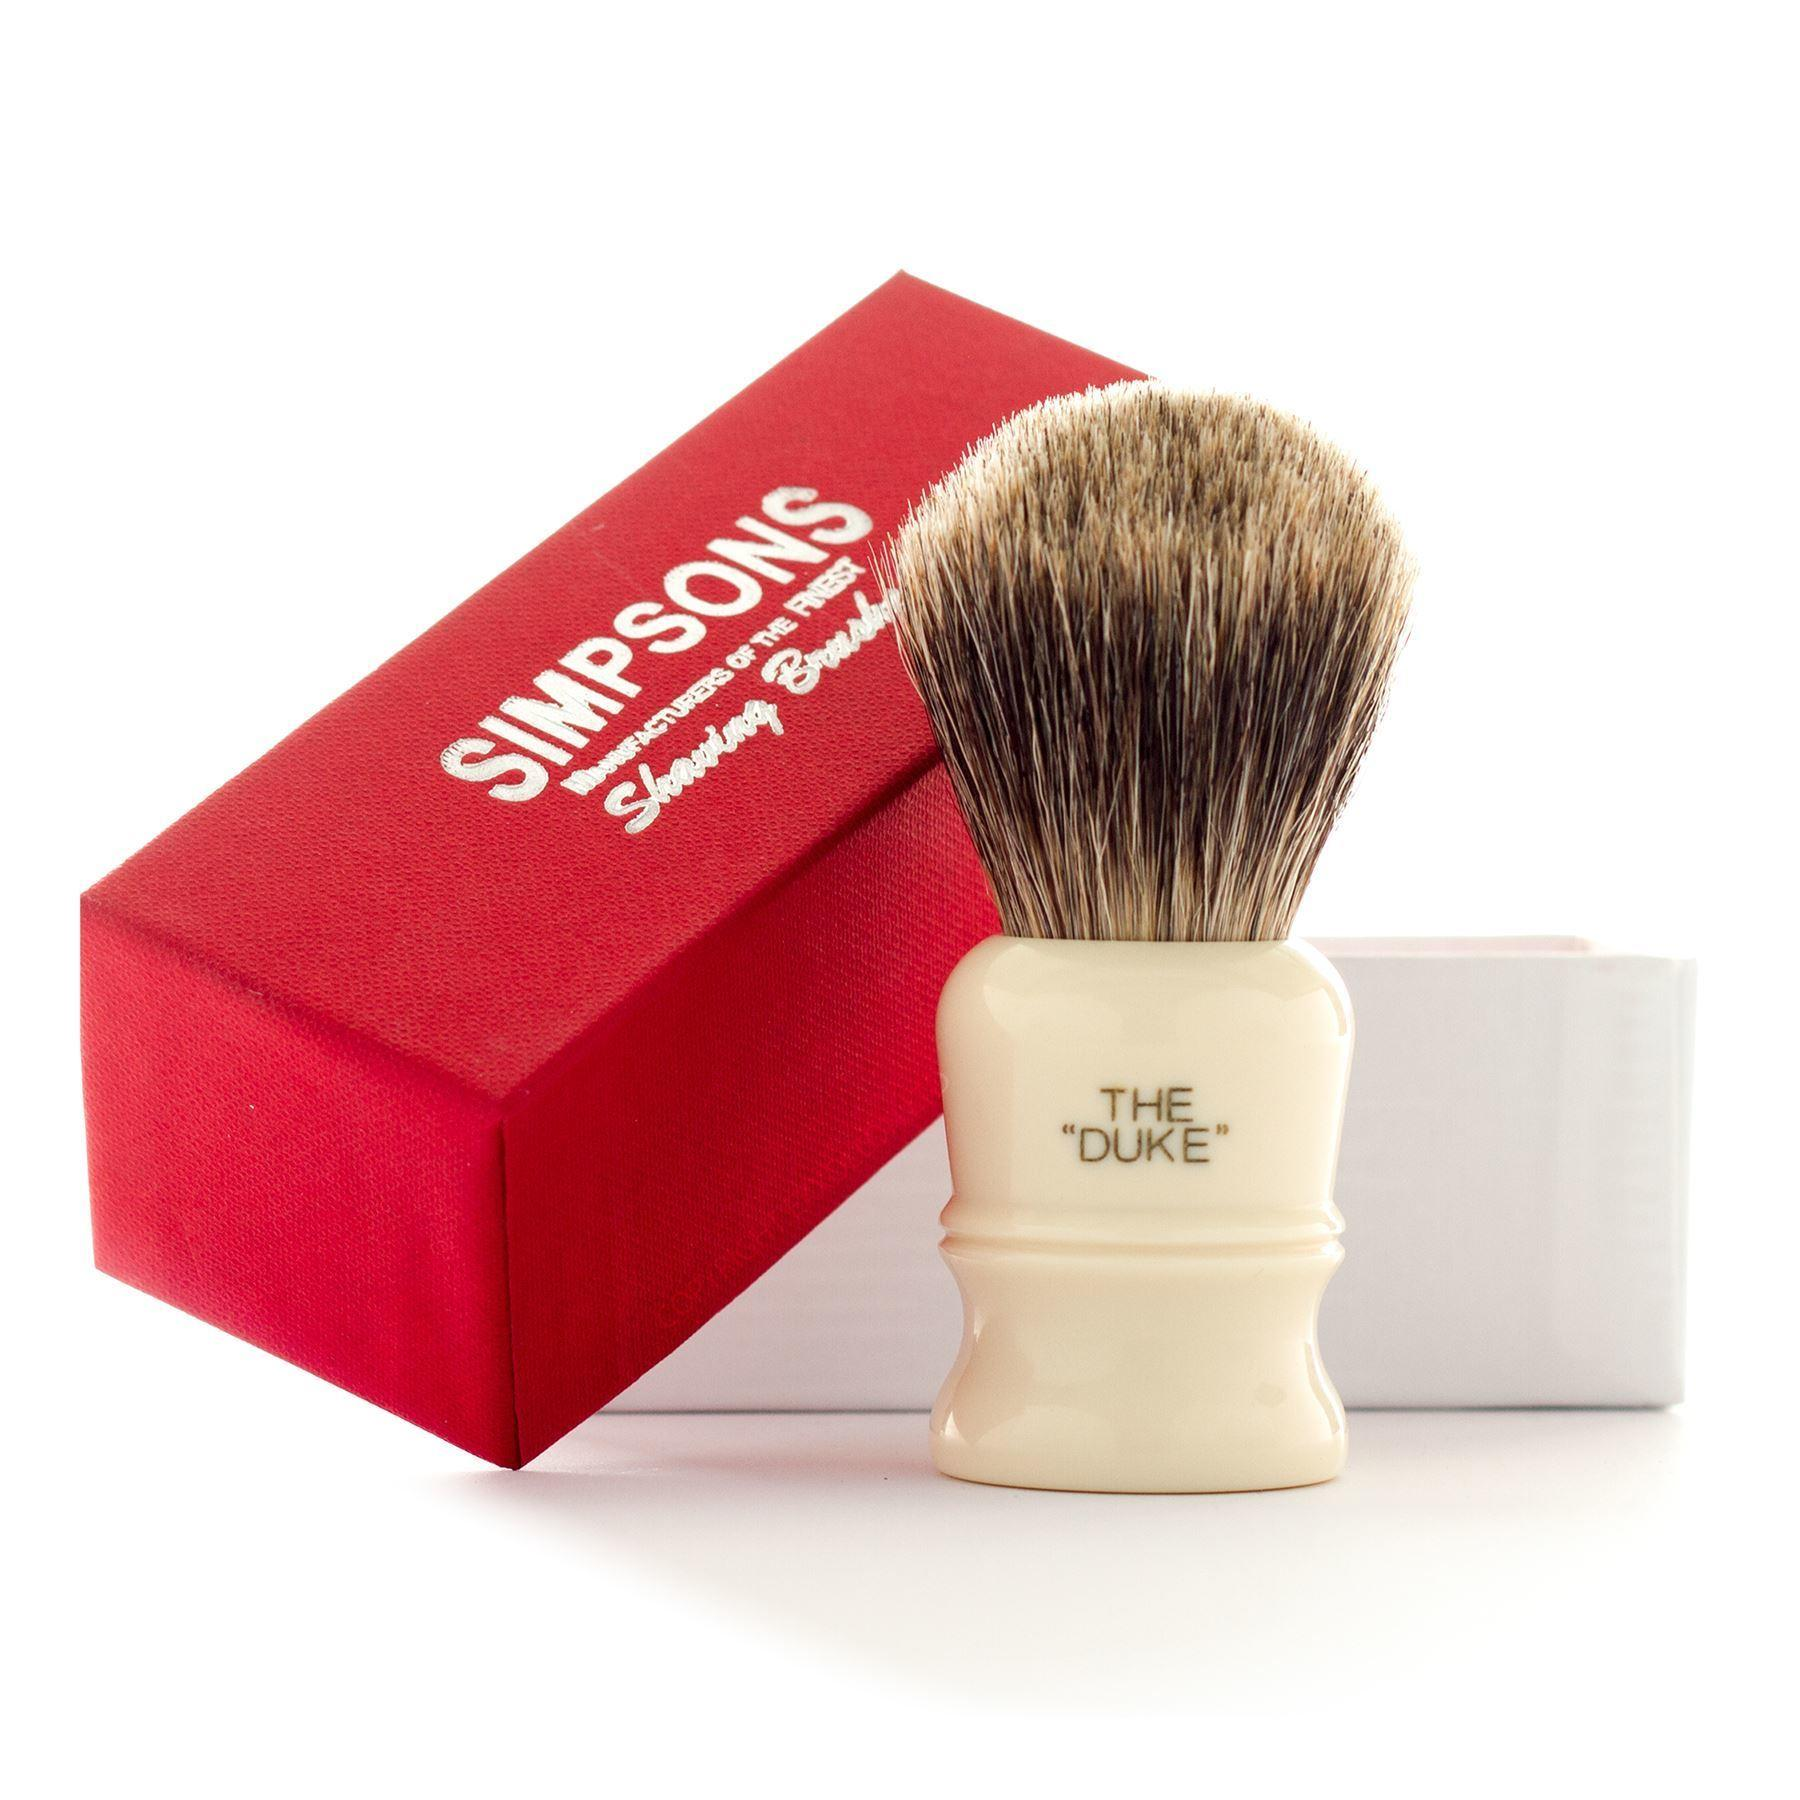 Simpsons Duke D3 Best Badger Hair Shaving Brush